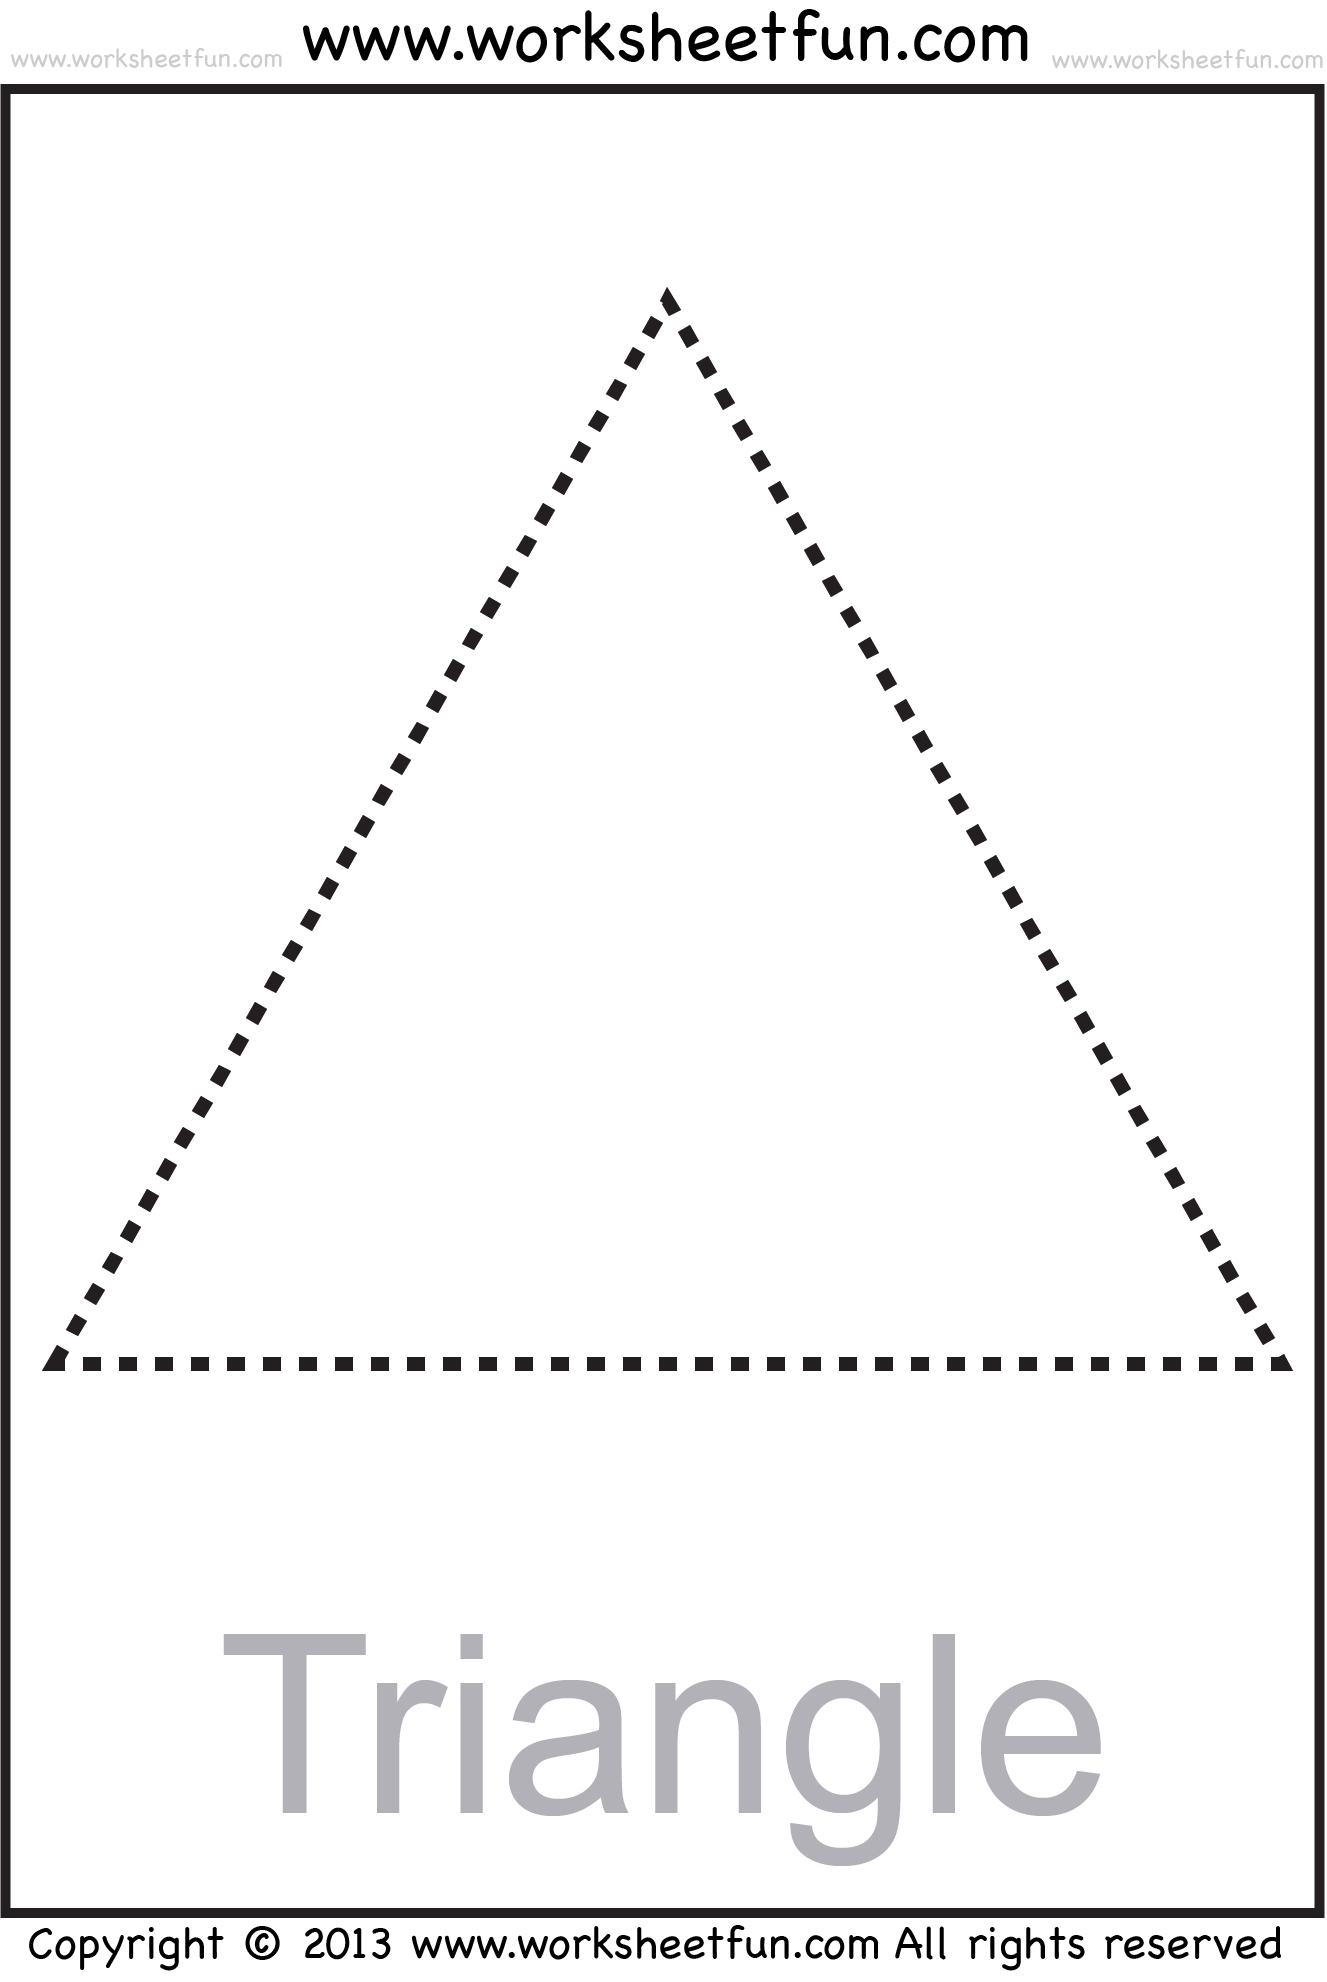 Image Result For Triangle Worksheets For Preschool